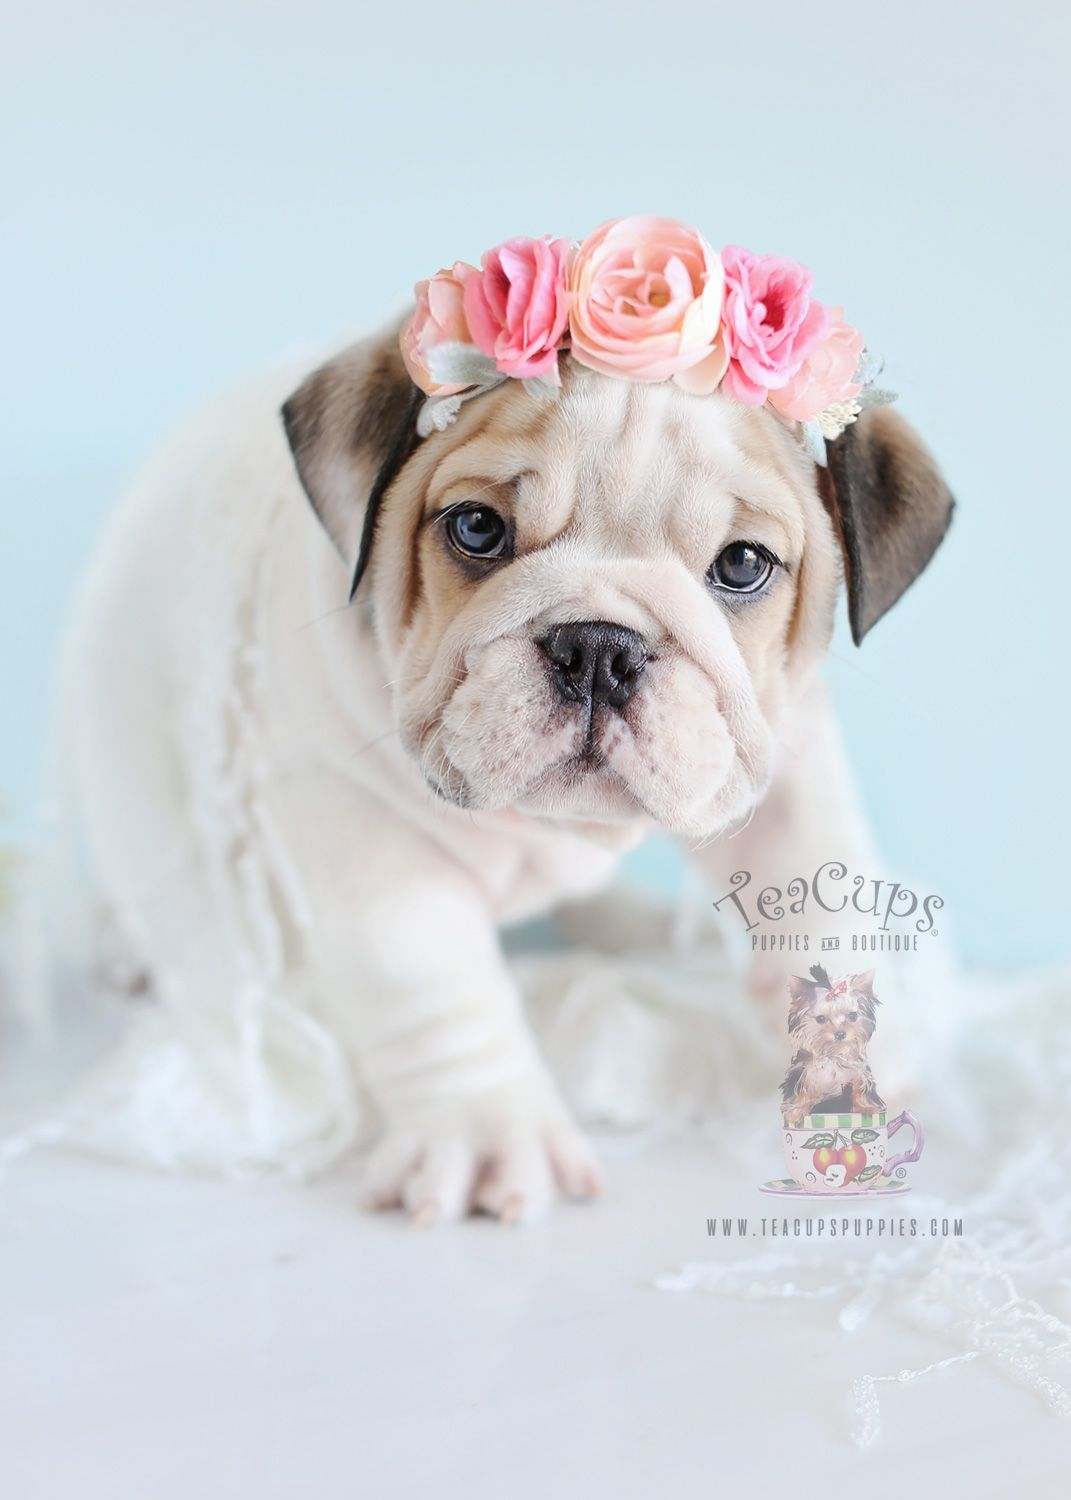 Pin By Patricia Webb On Dogs English Bulldog Puppies